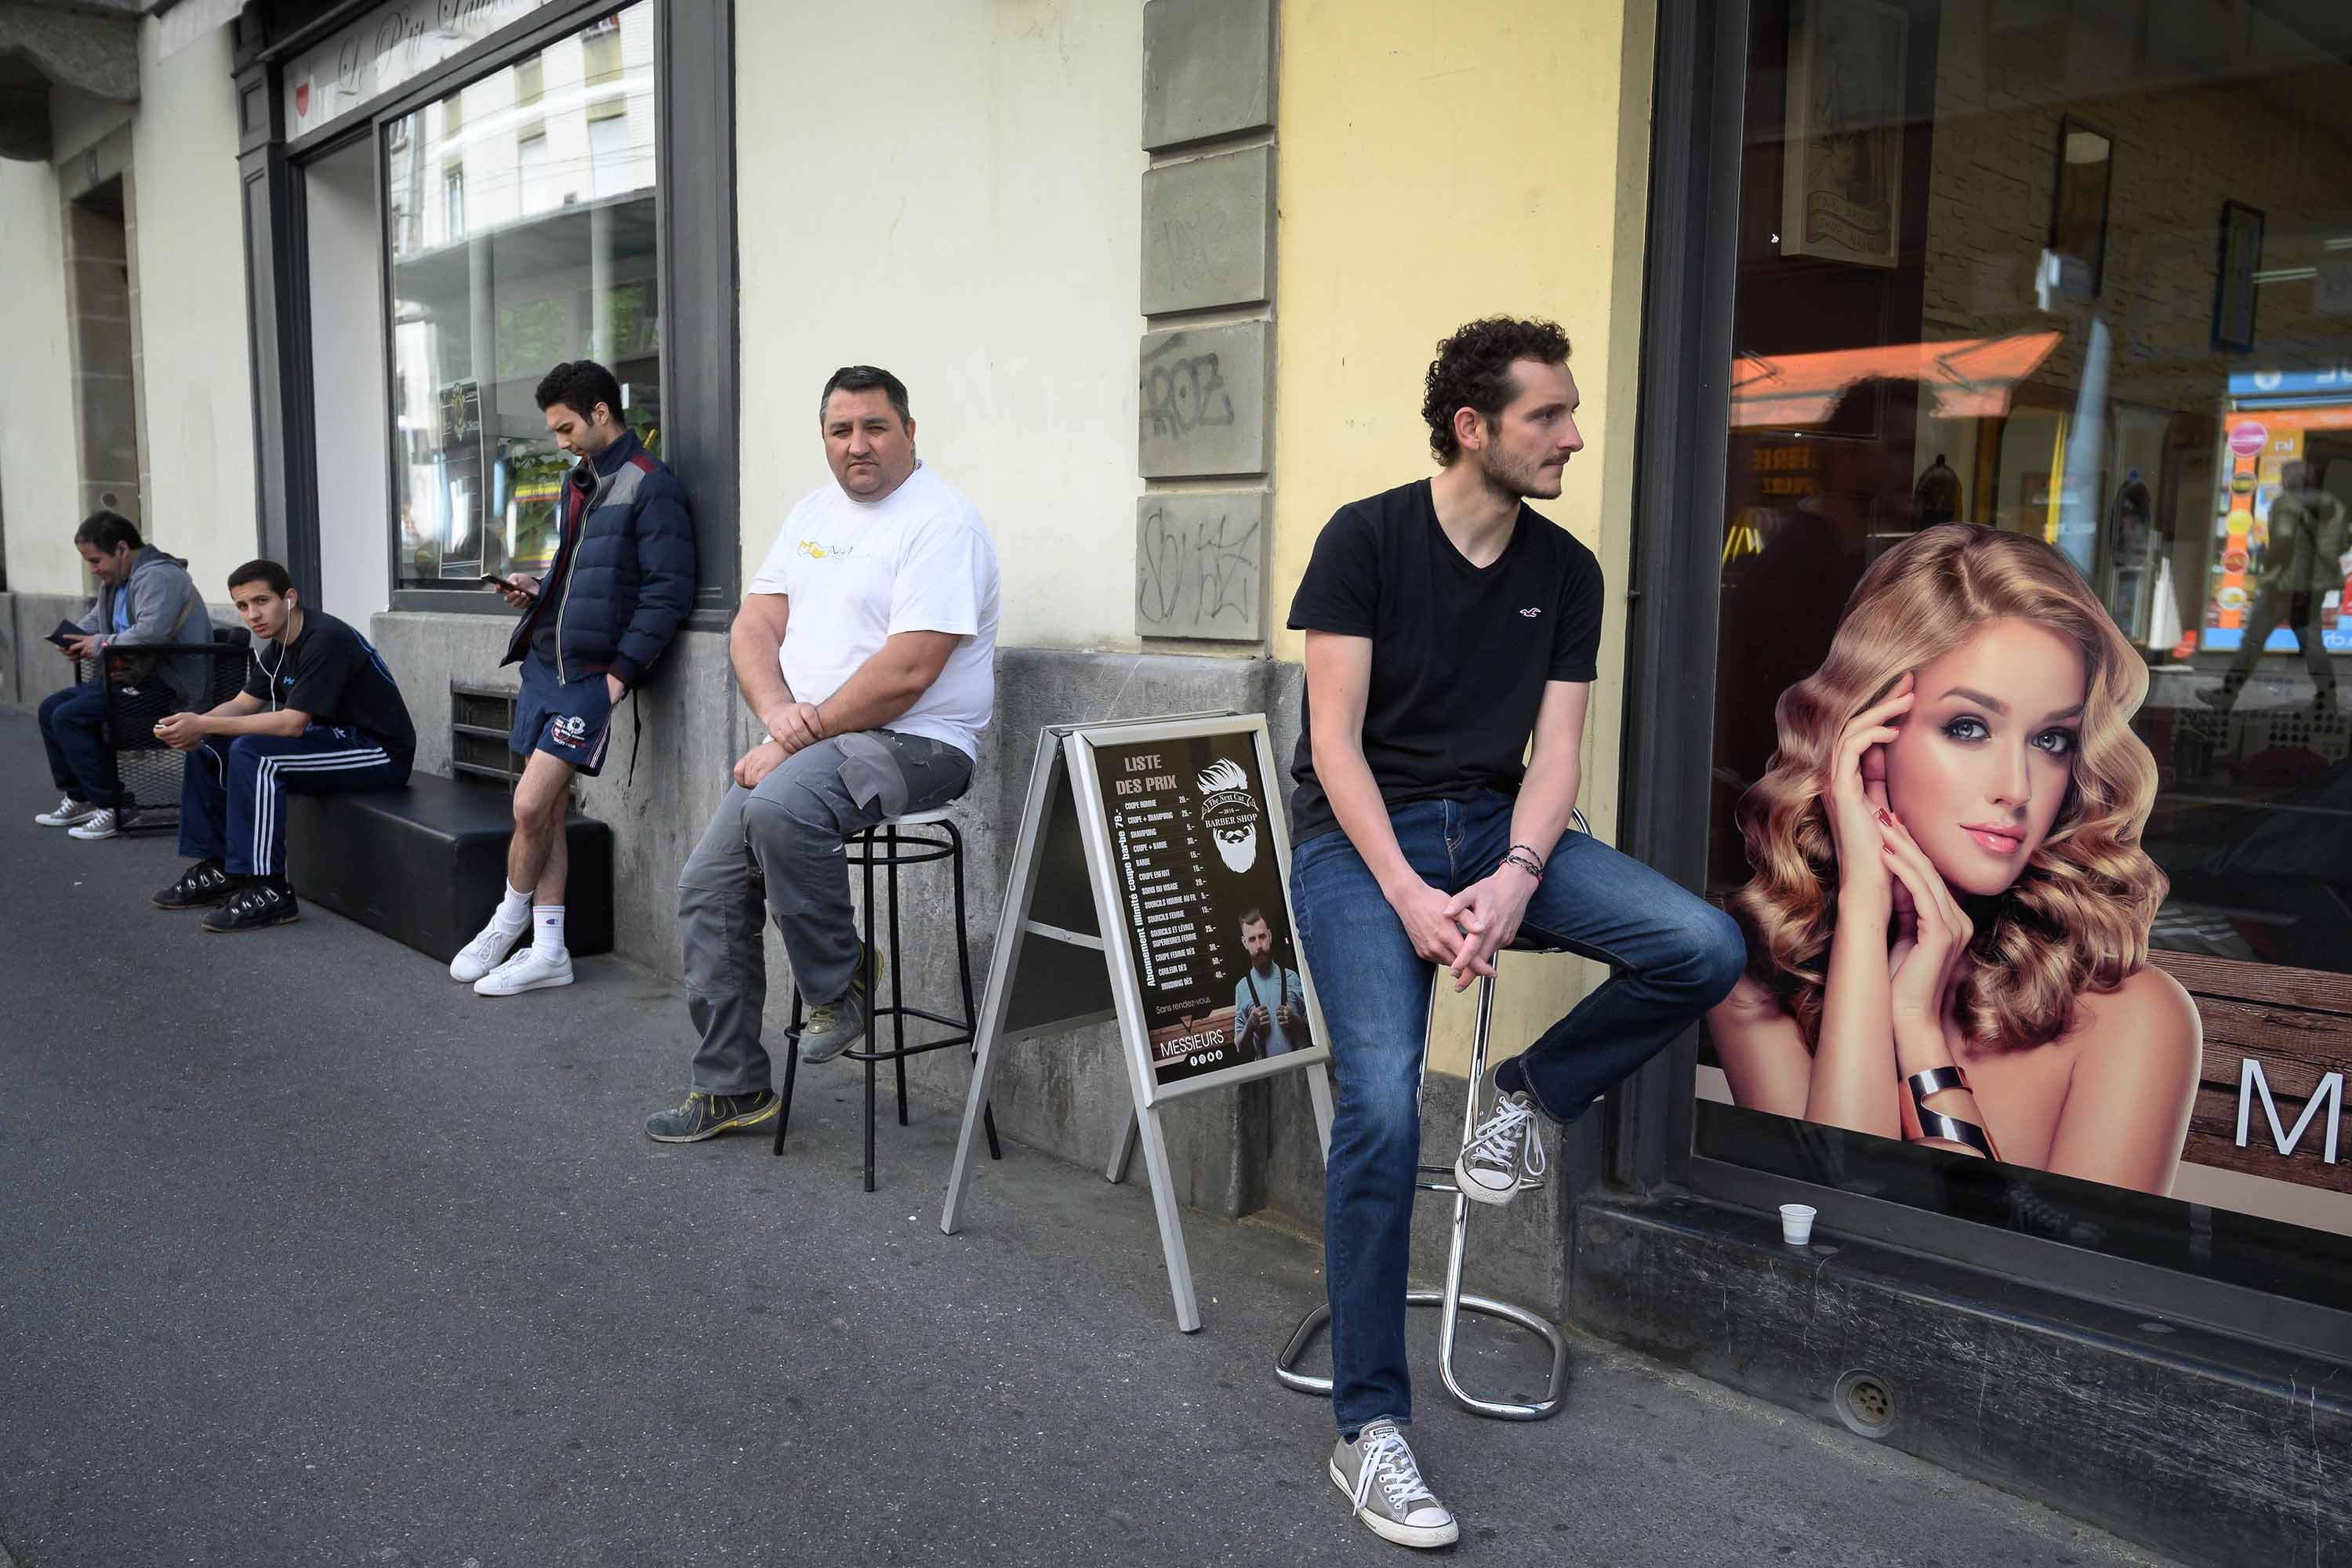 People queue outside a hair salon in Lausanne on April 27, after Switzerland began easing restrictions imposed to control the COVID-19 pandemic.